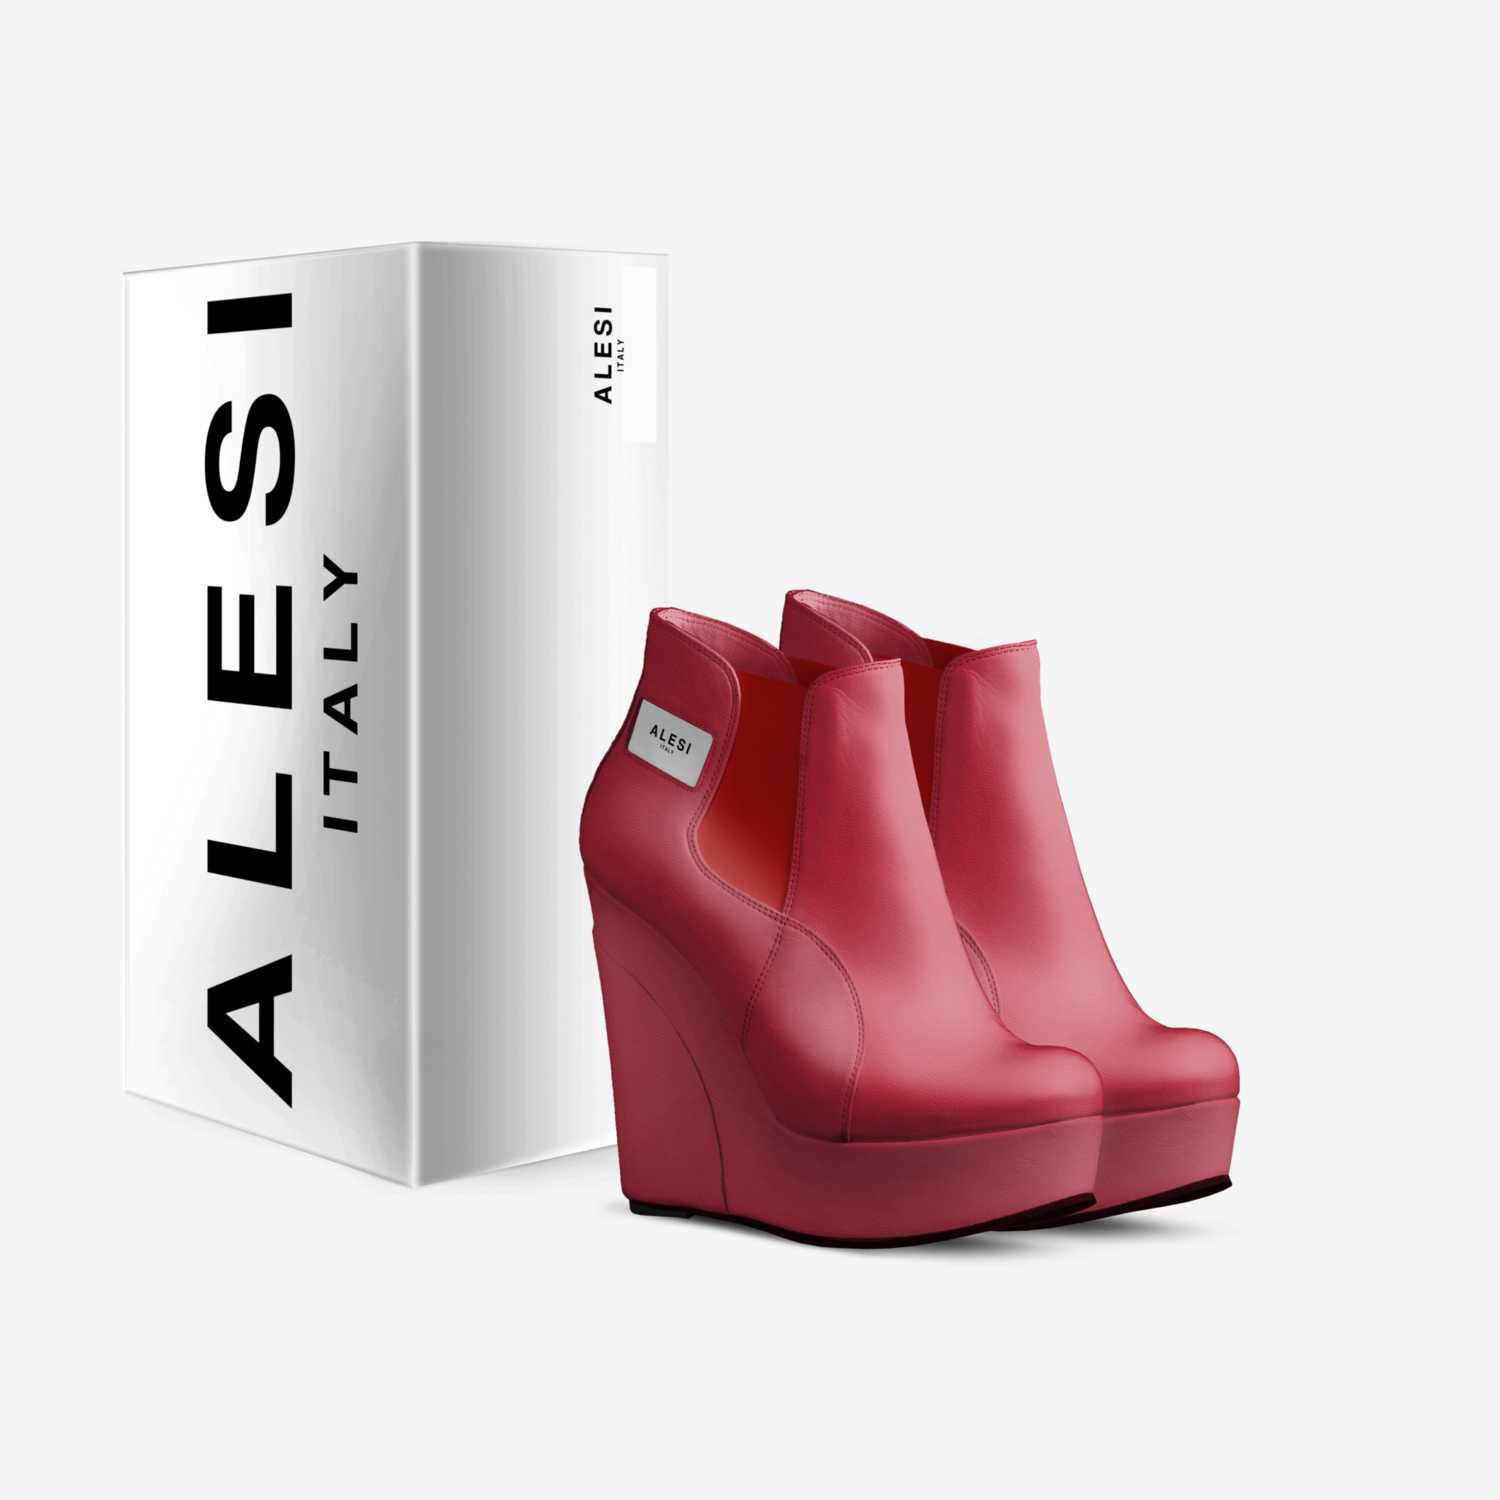 Alesi Wedge custom made in Italy shoes by Lonanthony Parker | Box view